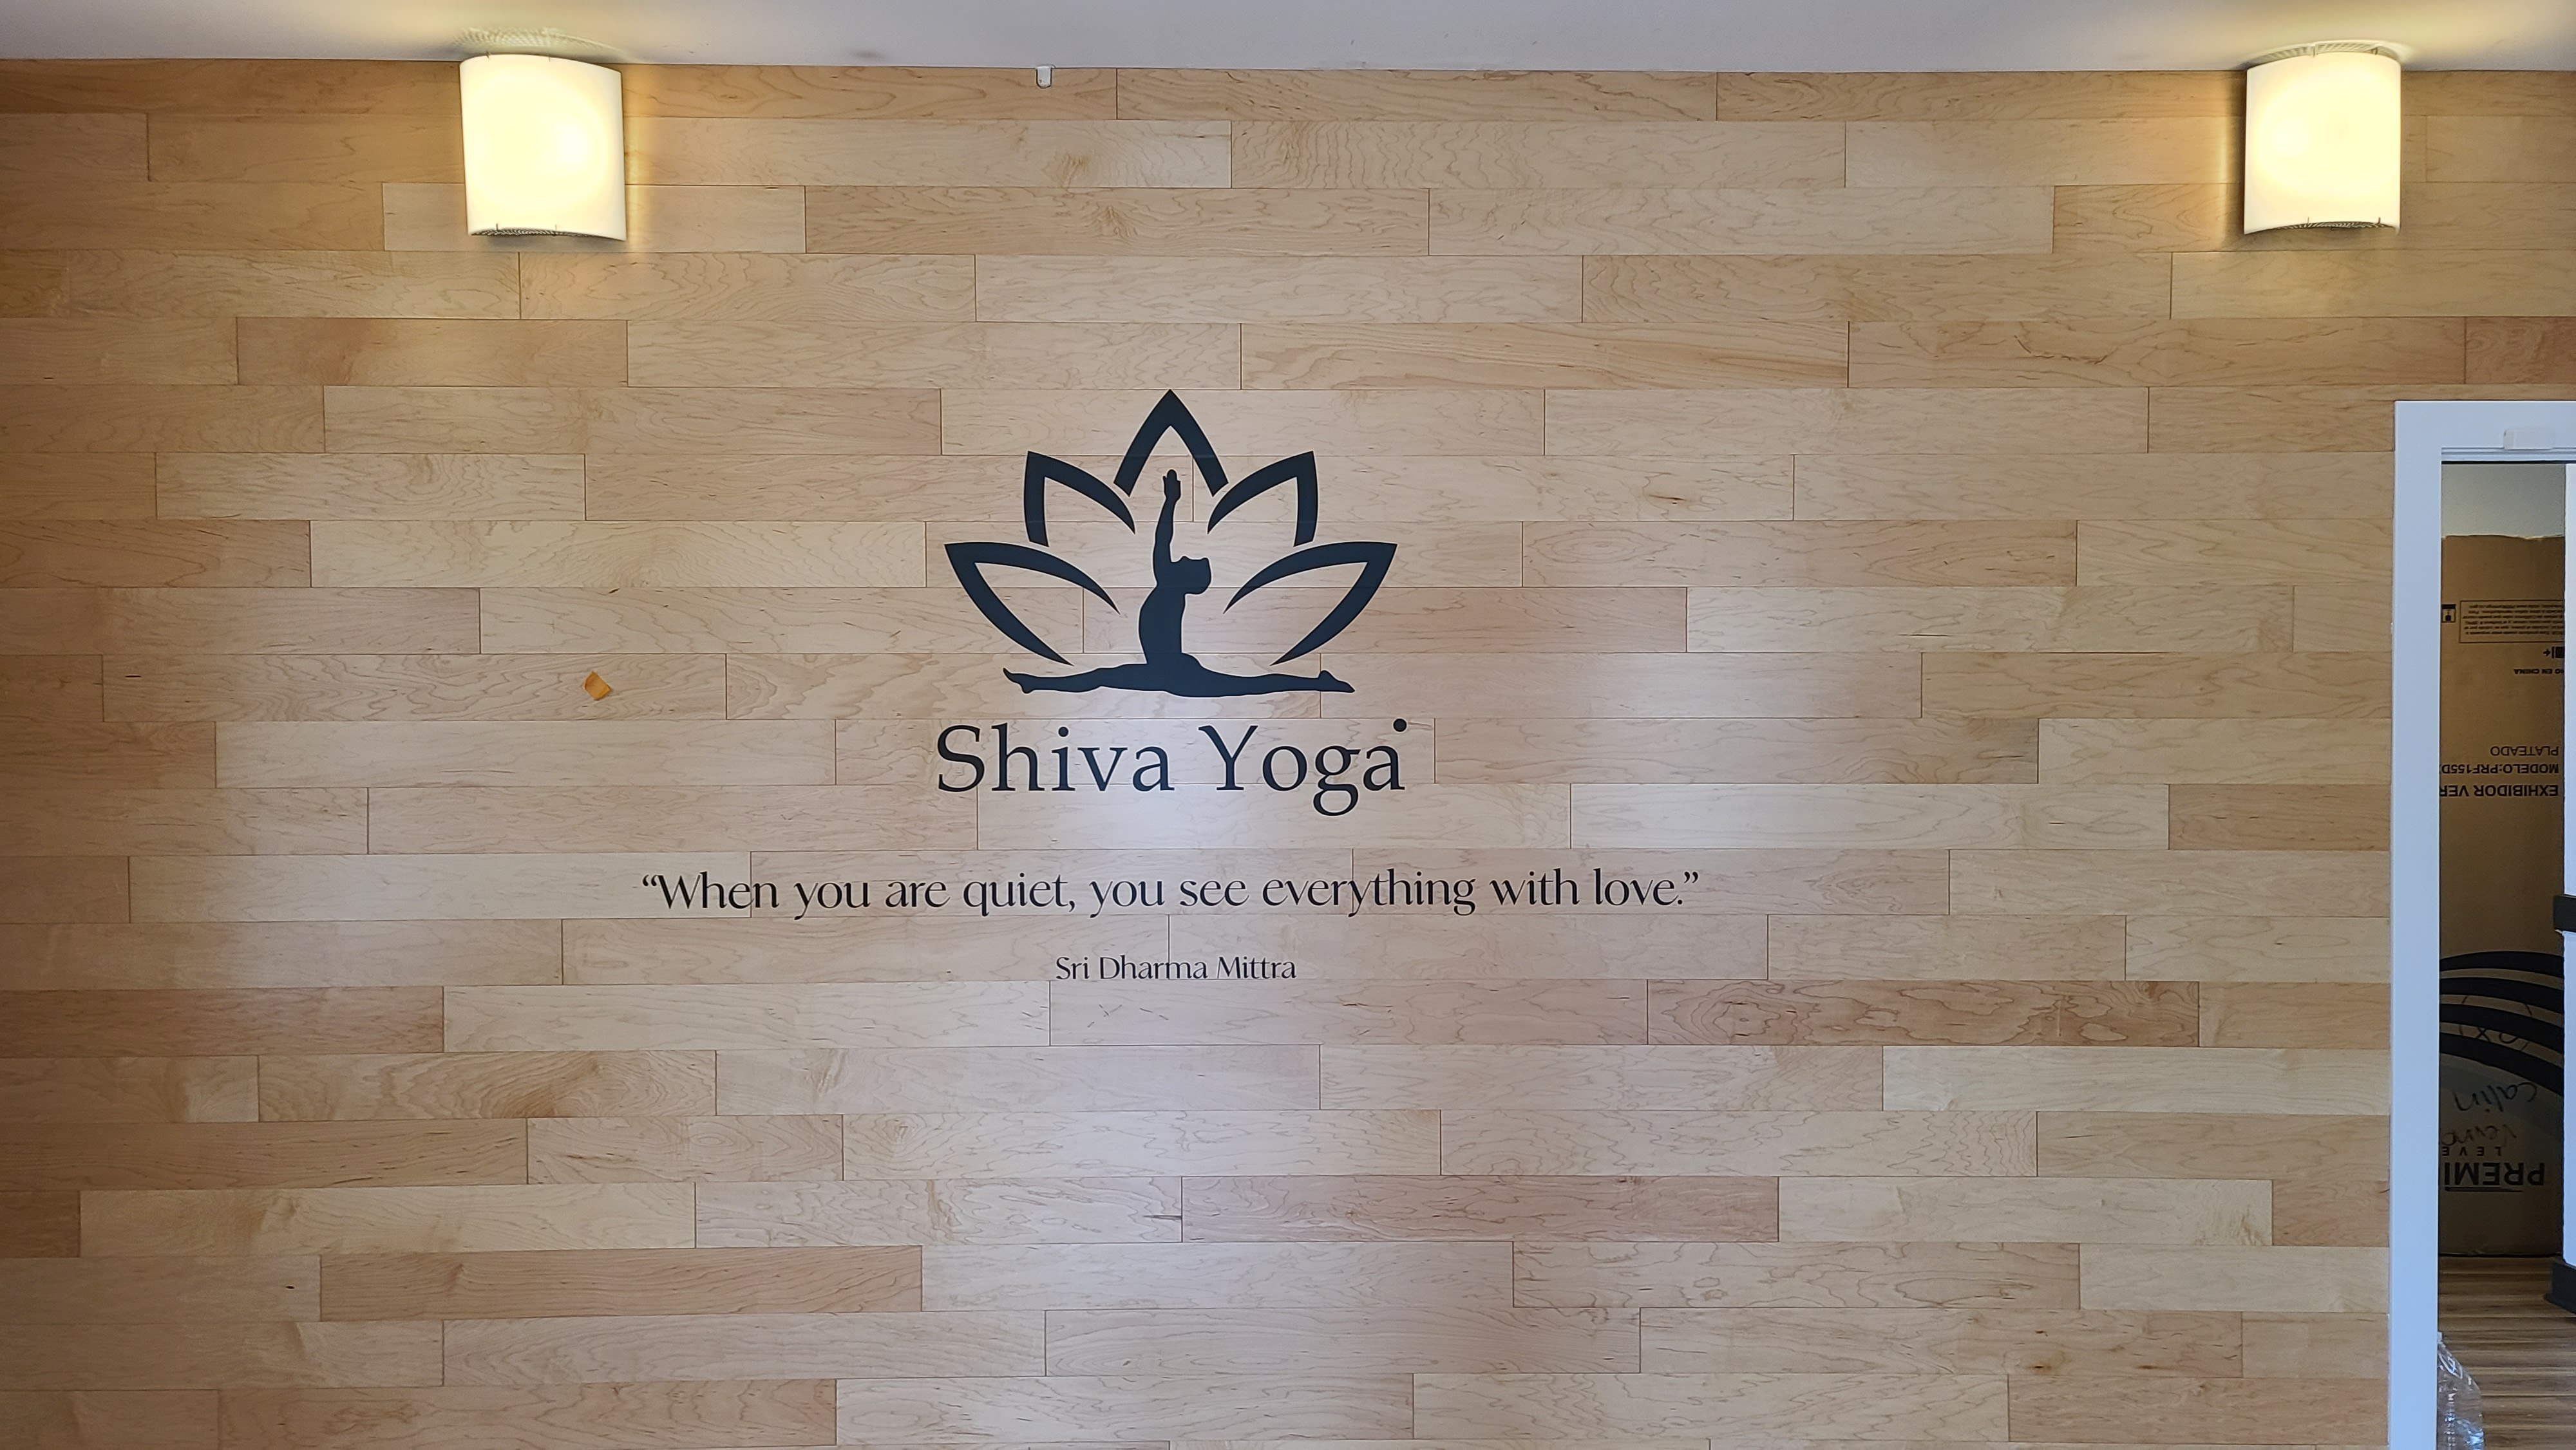 With these wall graphics, members and visitors alike will know that tranquility and a good workout await them in Shiva Yoga's West Hollywood branch.